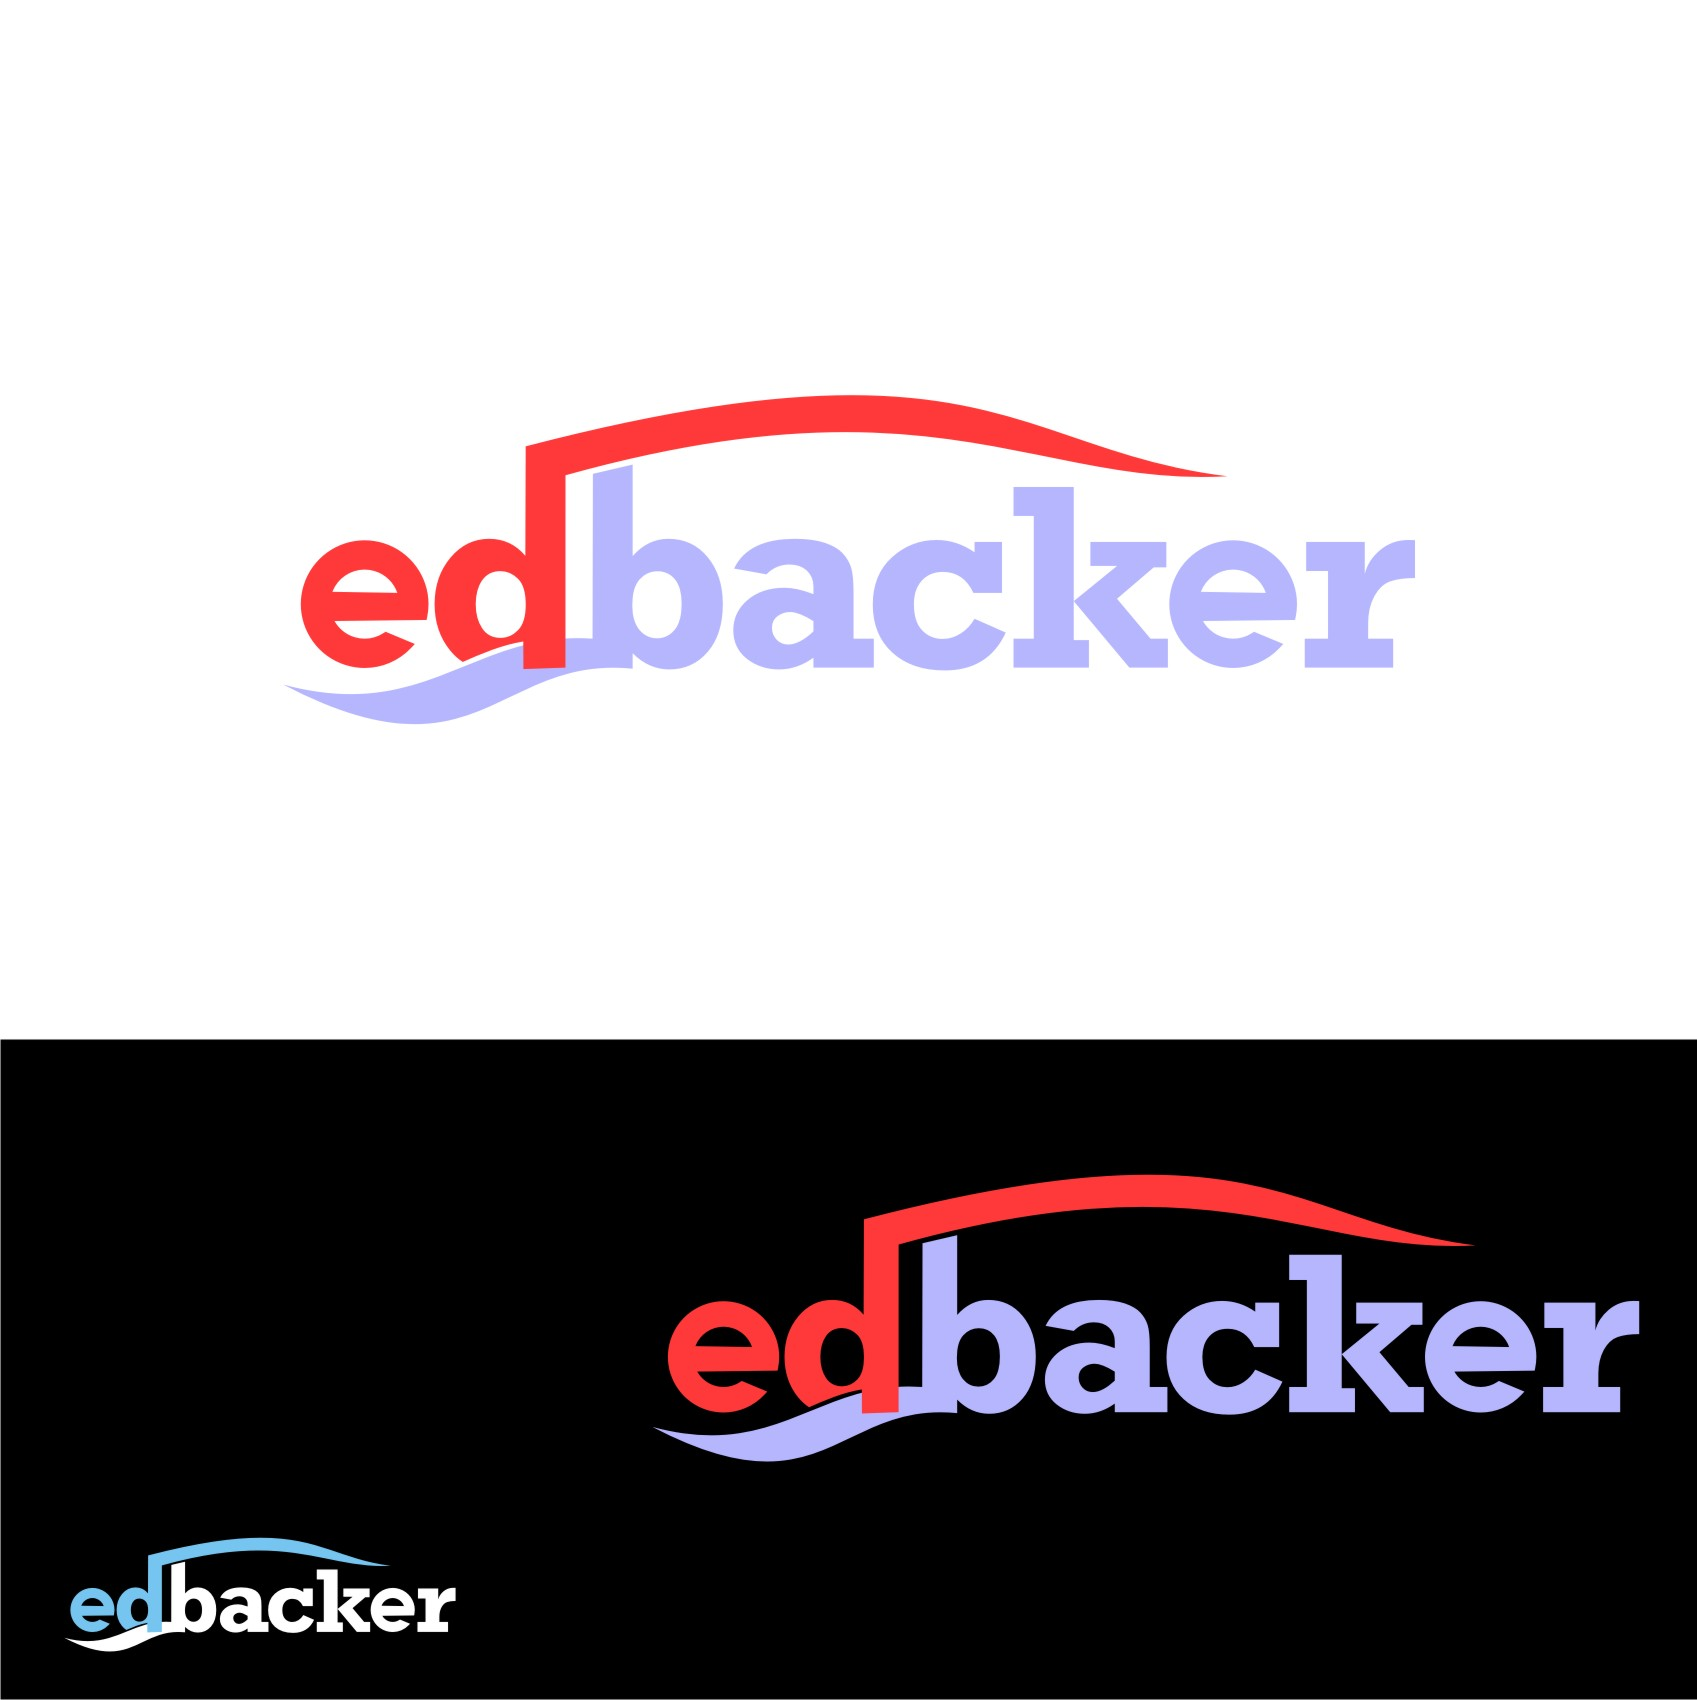 Logo Design by Private User - Entry No. 62 in the Logo Design Contest New Logo Design for edbacker.